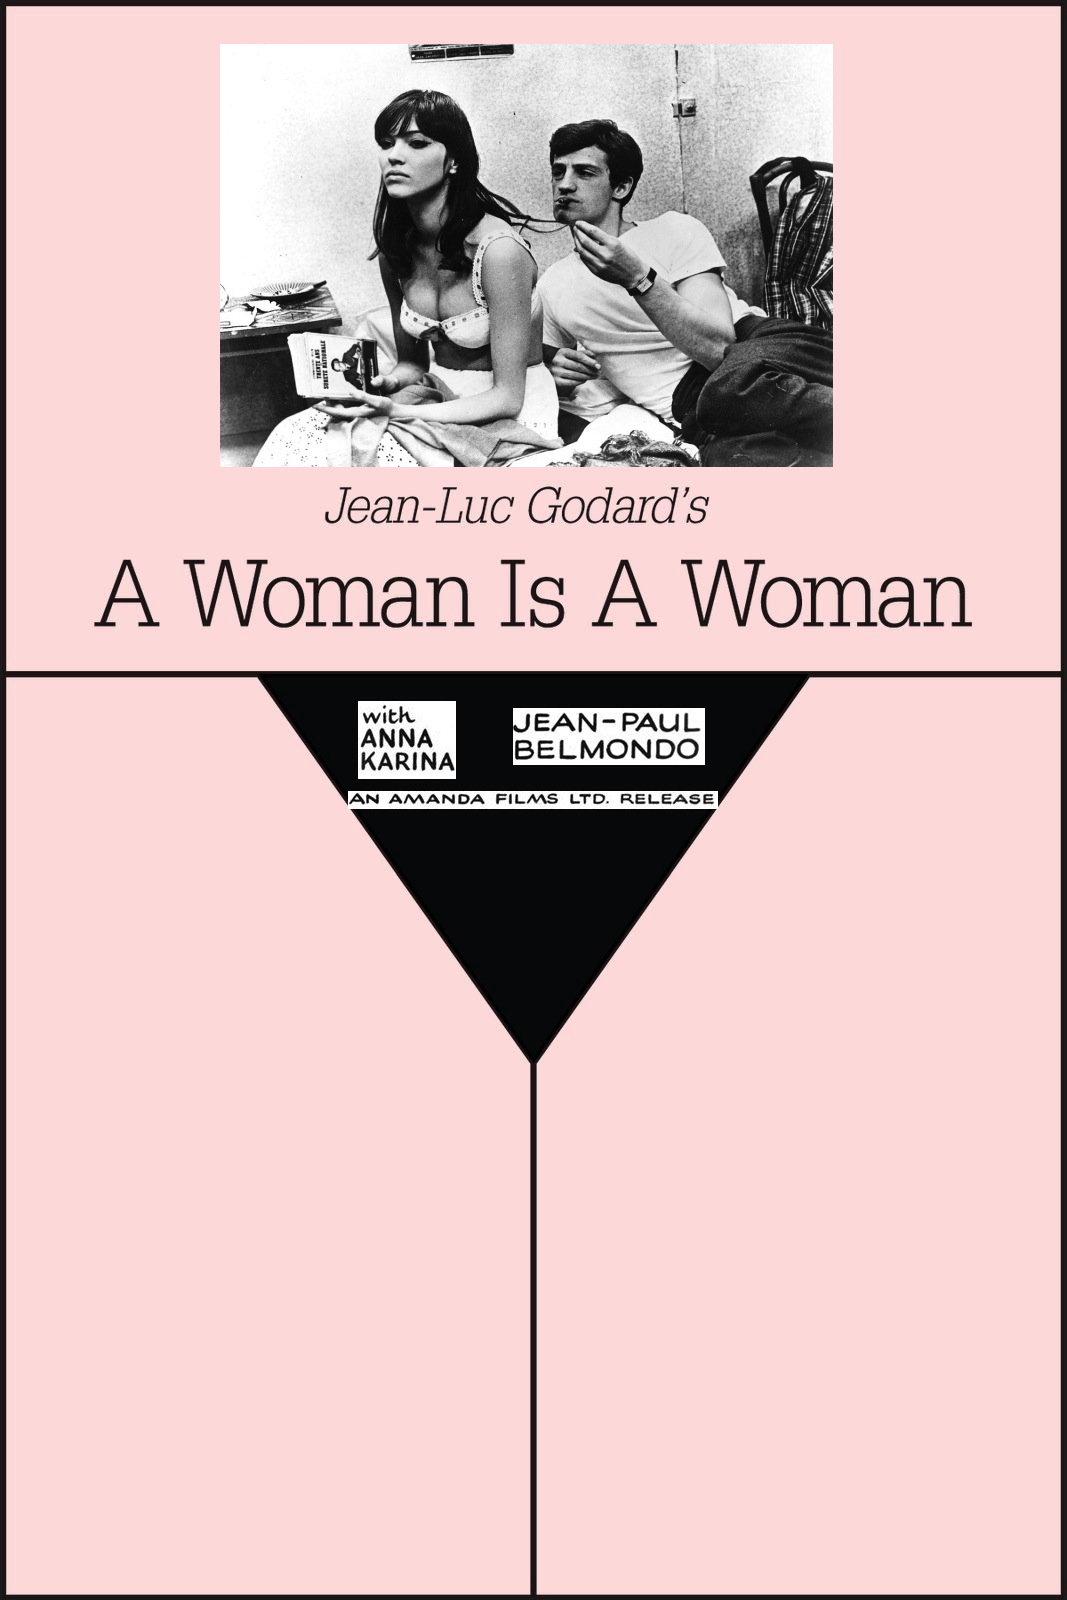 woman is a woman poster.jpg